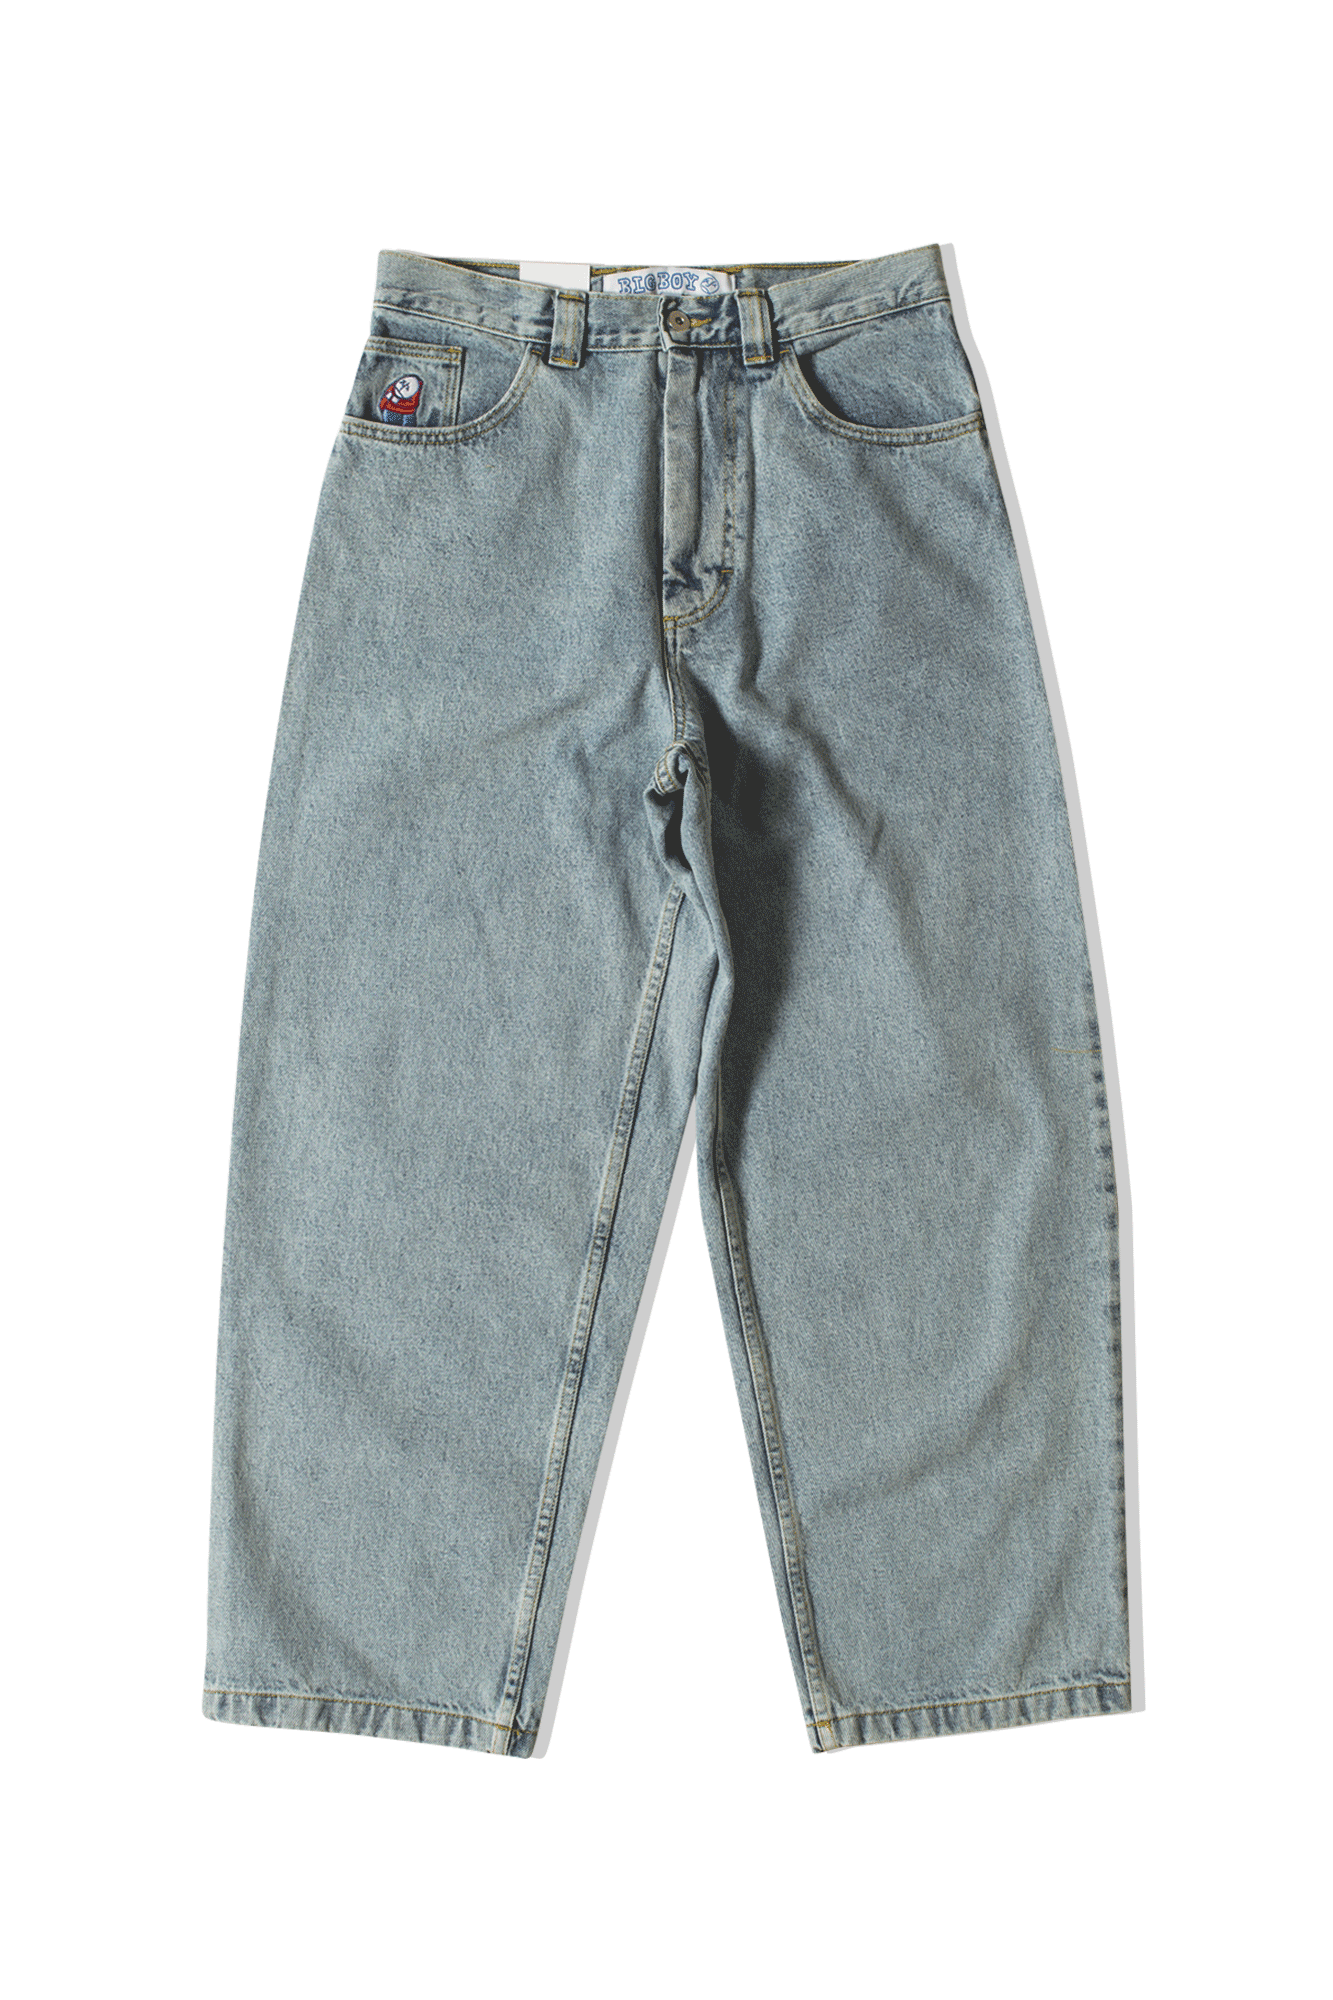 Polar Jeans Big Boy Jeans Blu POL-BIGBOY#LBLUE#LBLUE#XS - One Block Down